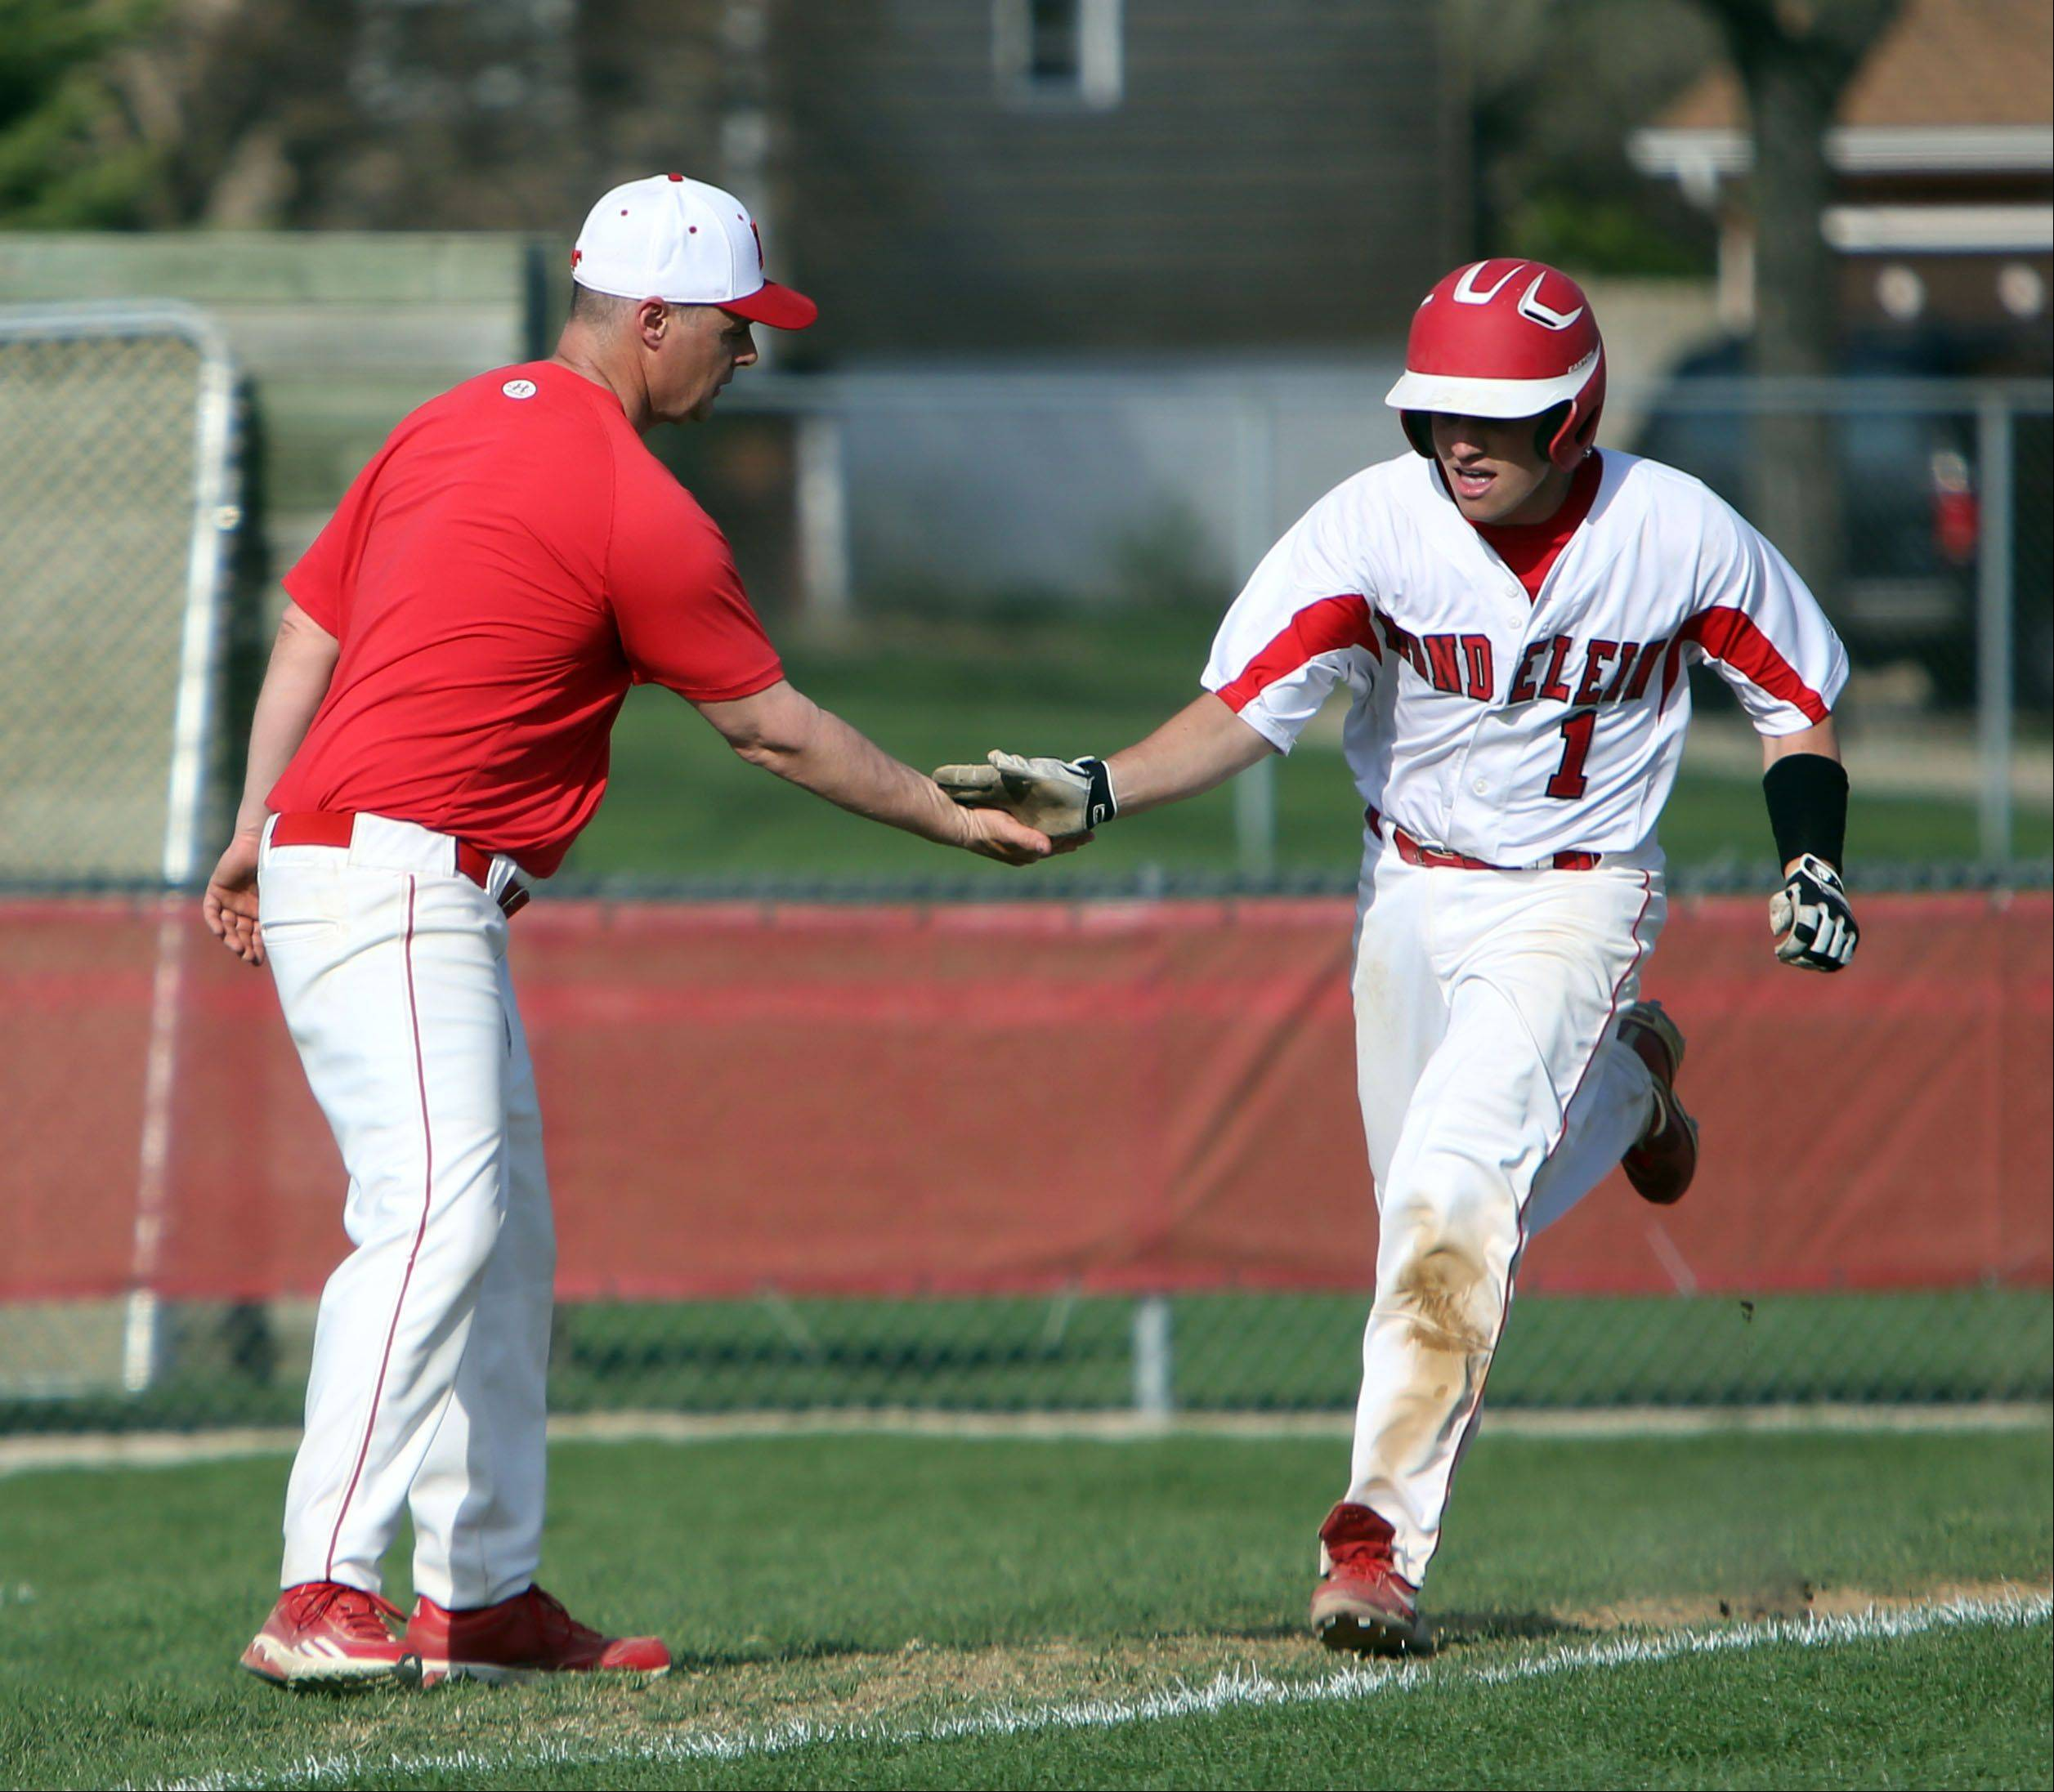 Mundelein coach Todd Parola, left, congratulates Logan Reckert as he rounds third base after a home run during their game against Libertyville Tuesday at Mundelein High School.